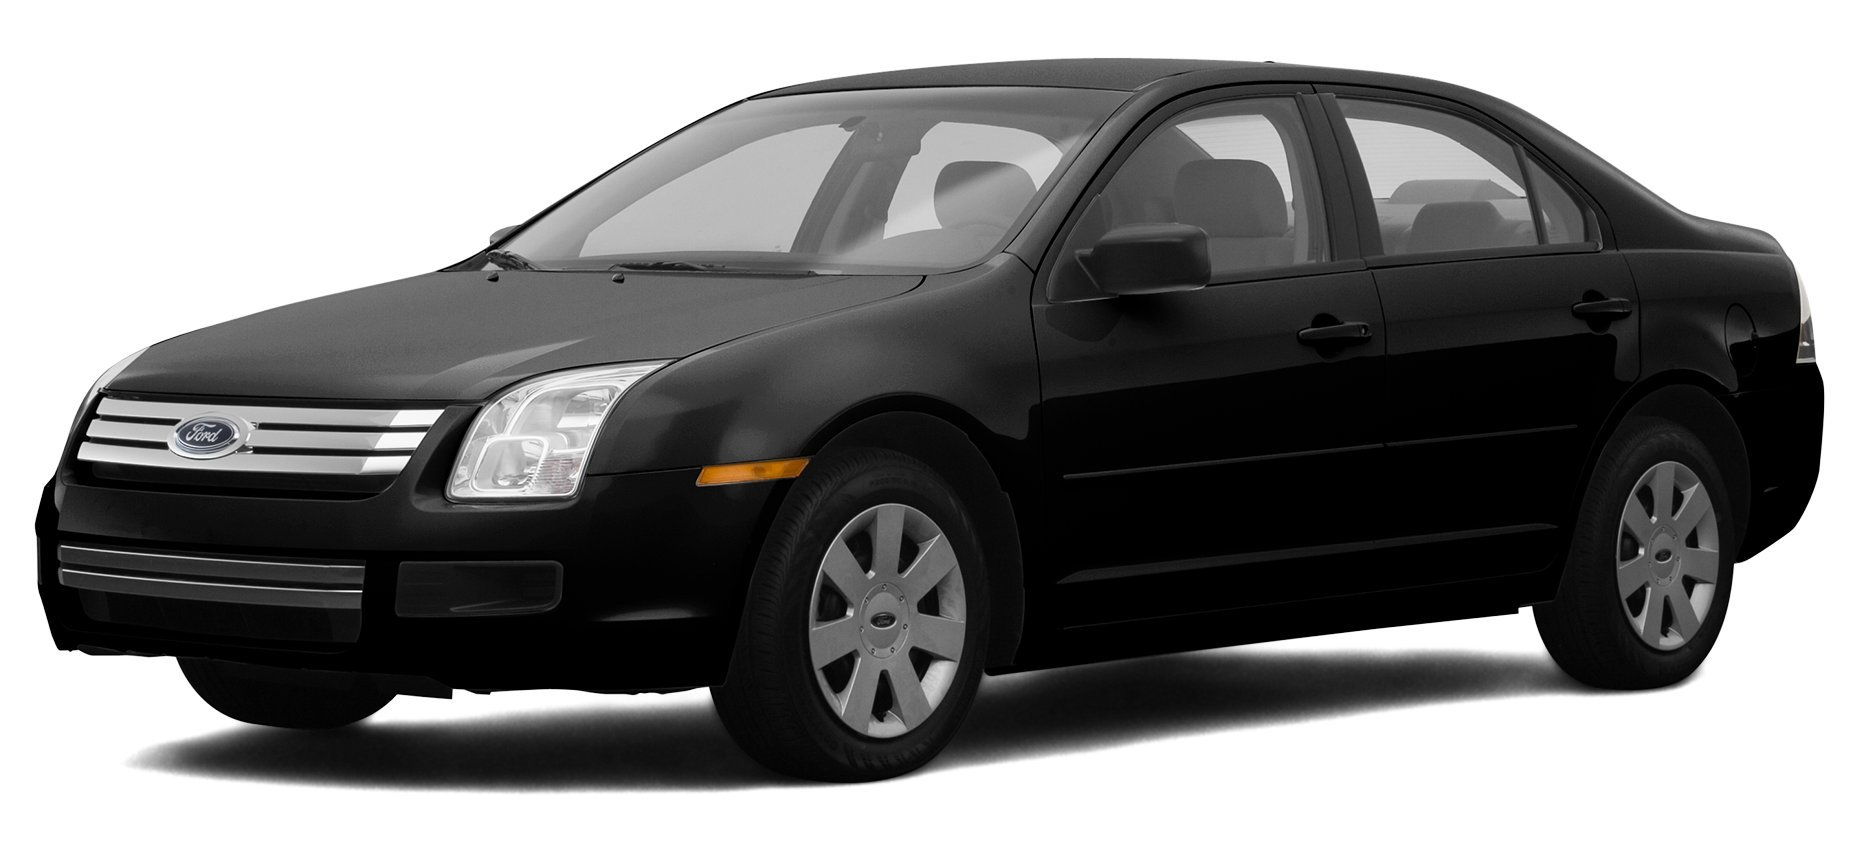 2008 ford fusion reviews images and specs. Black Bedroom Furniture Sets. Home Design Ideas